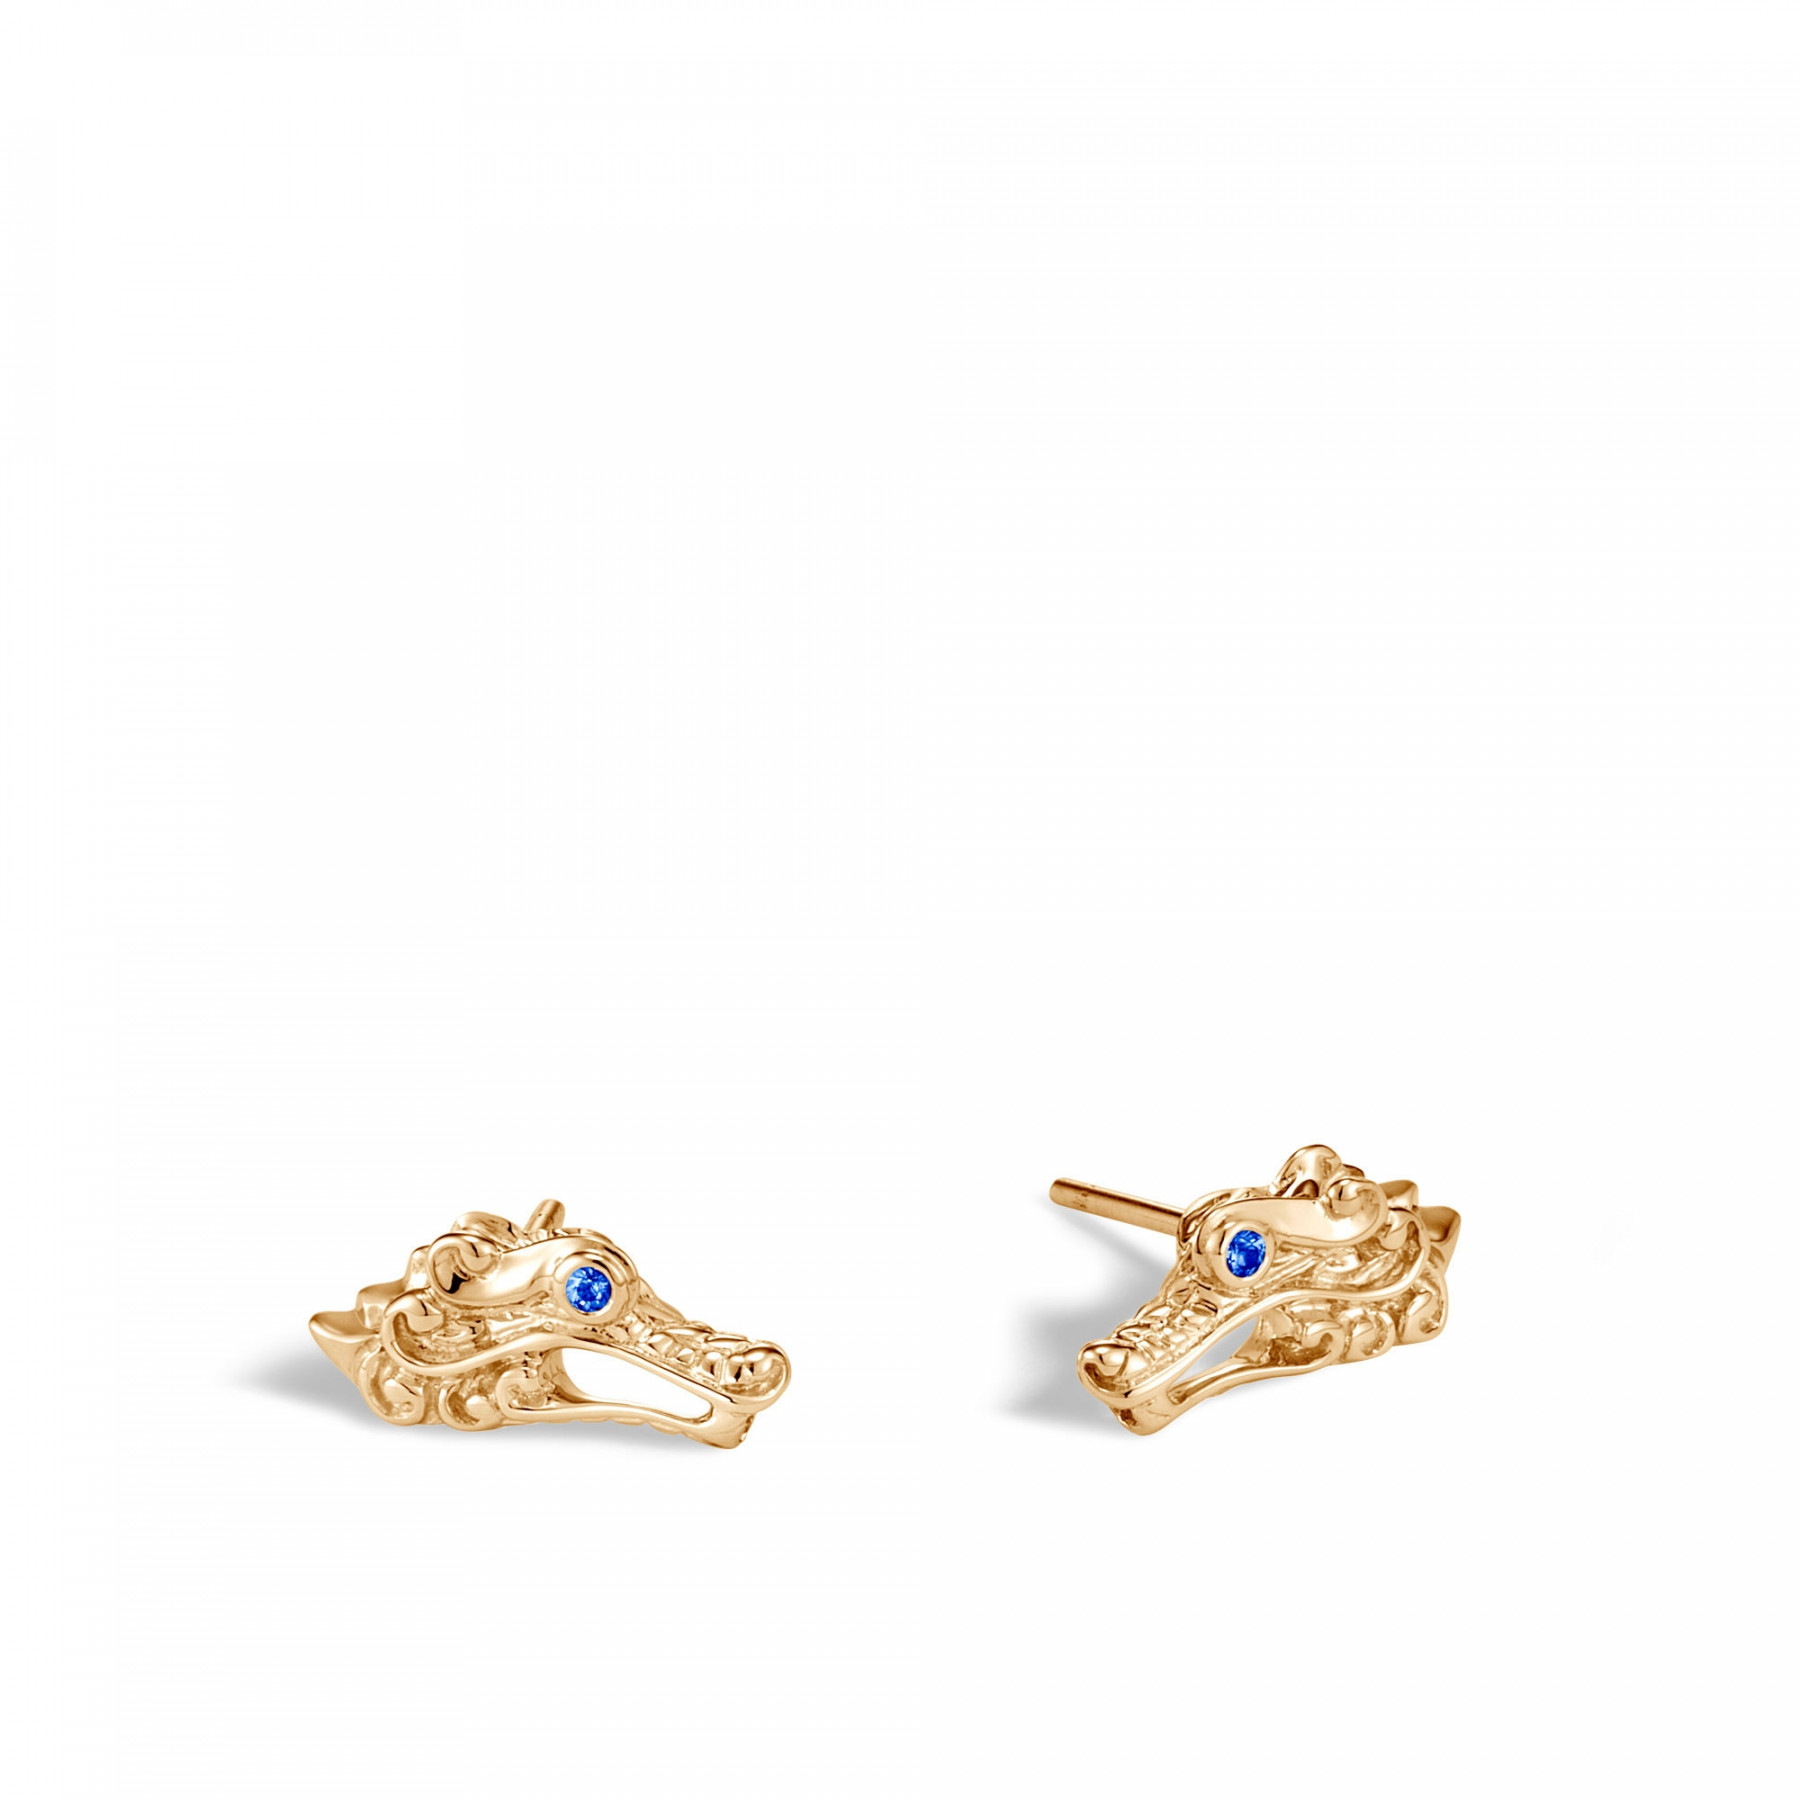 John Hardy Legends Naga Dragon Stud Earrings in 18k Yellow Gold